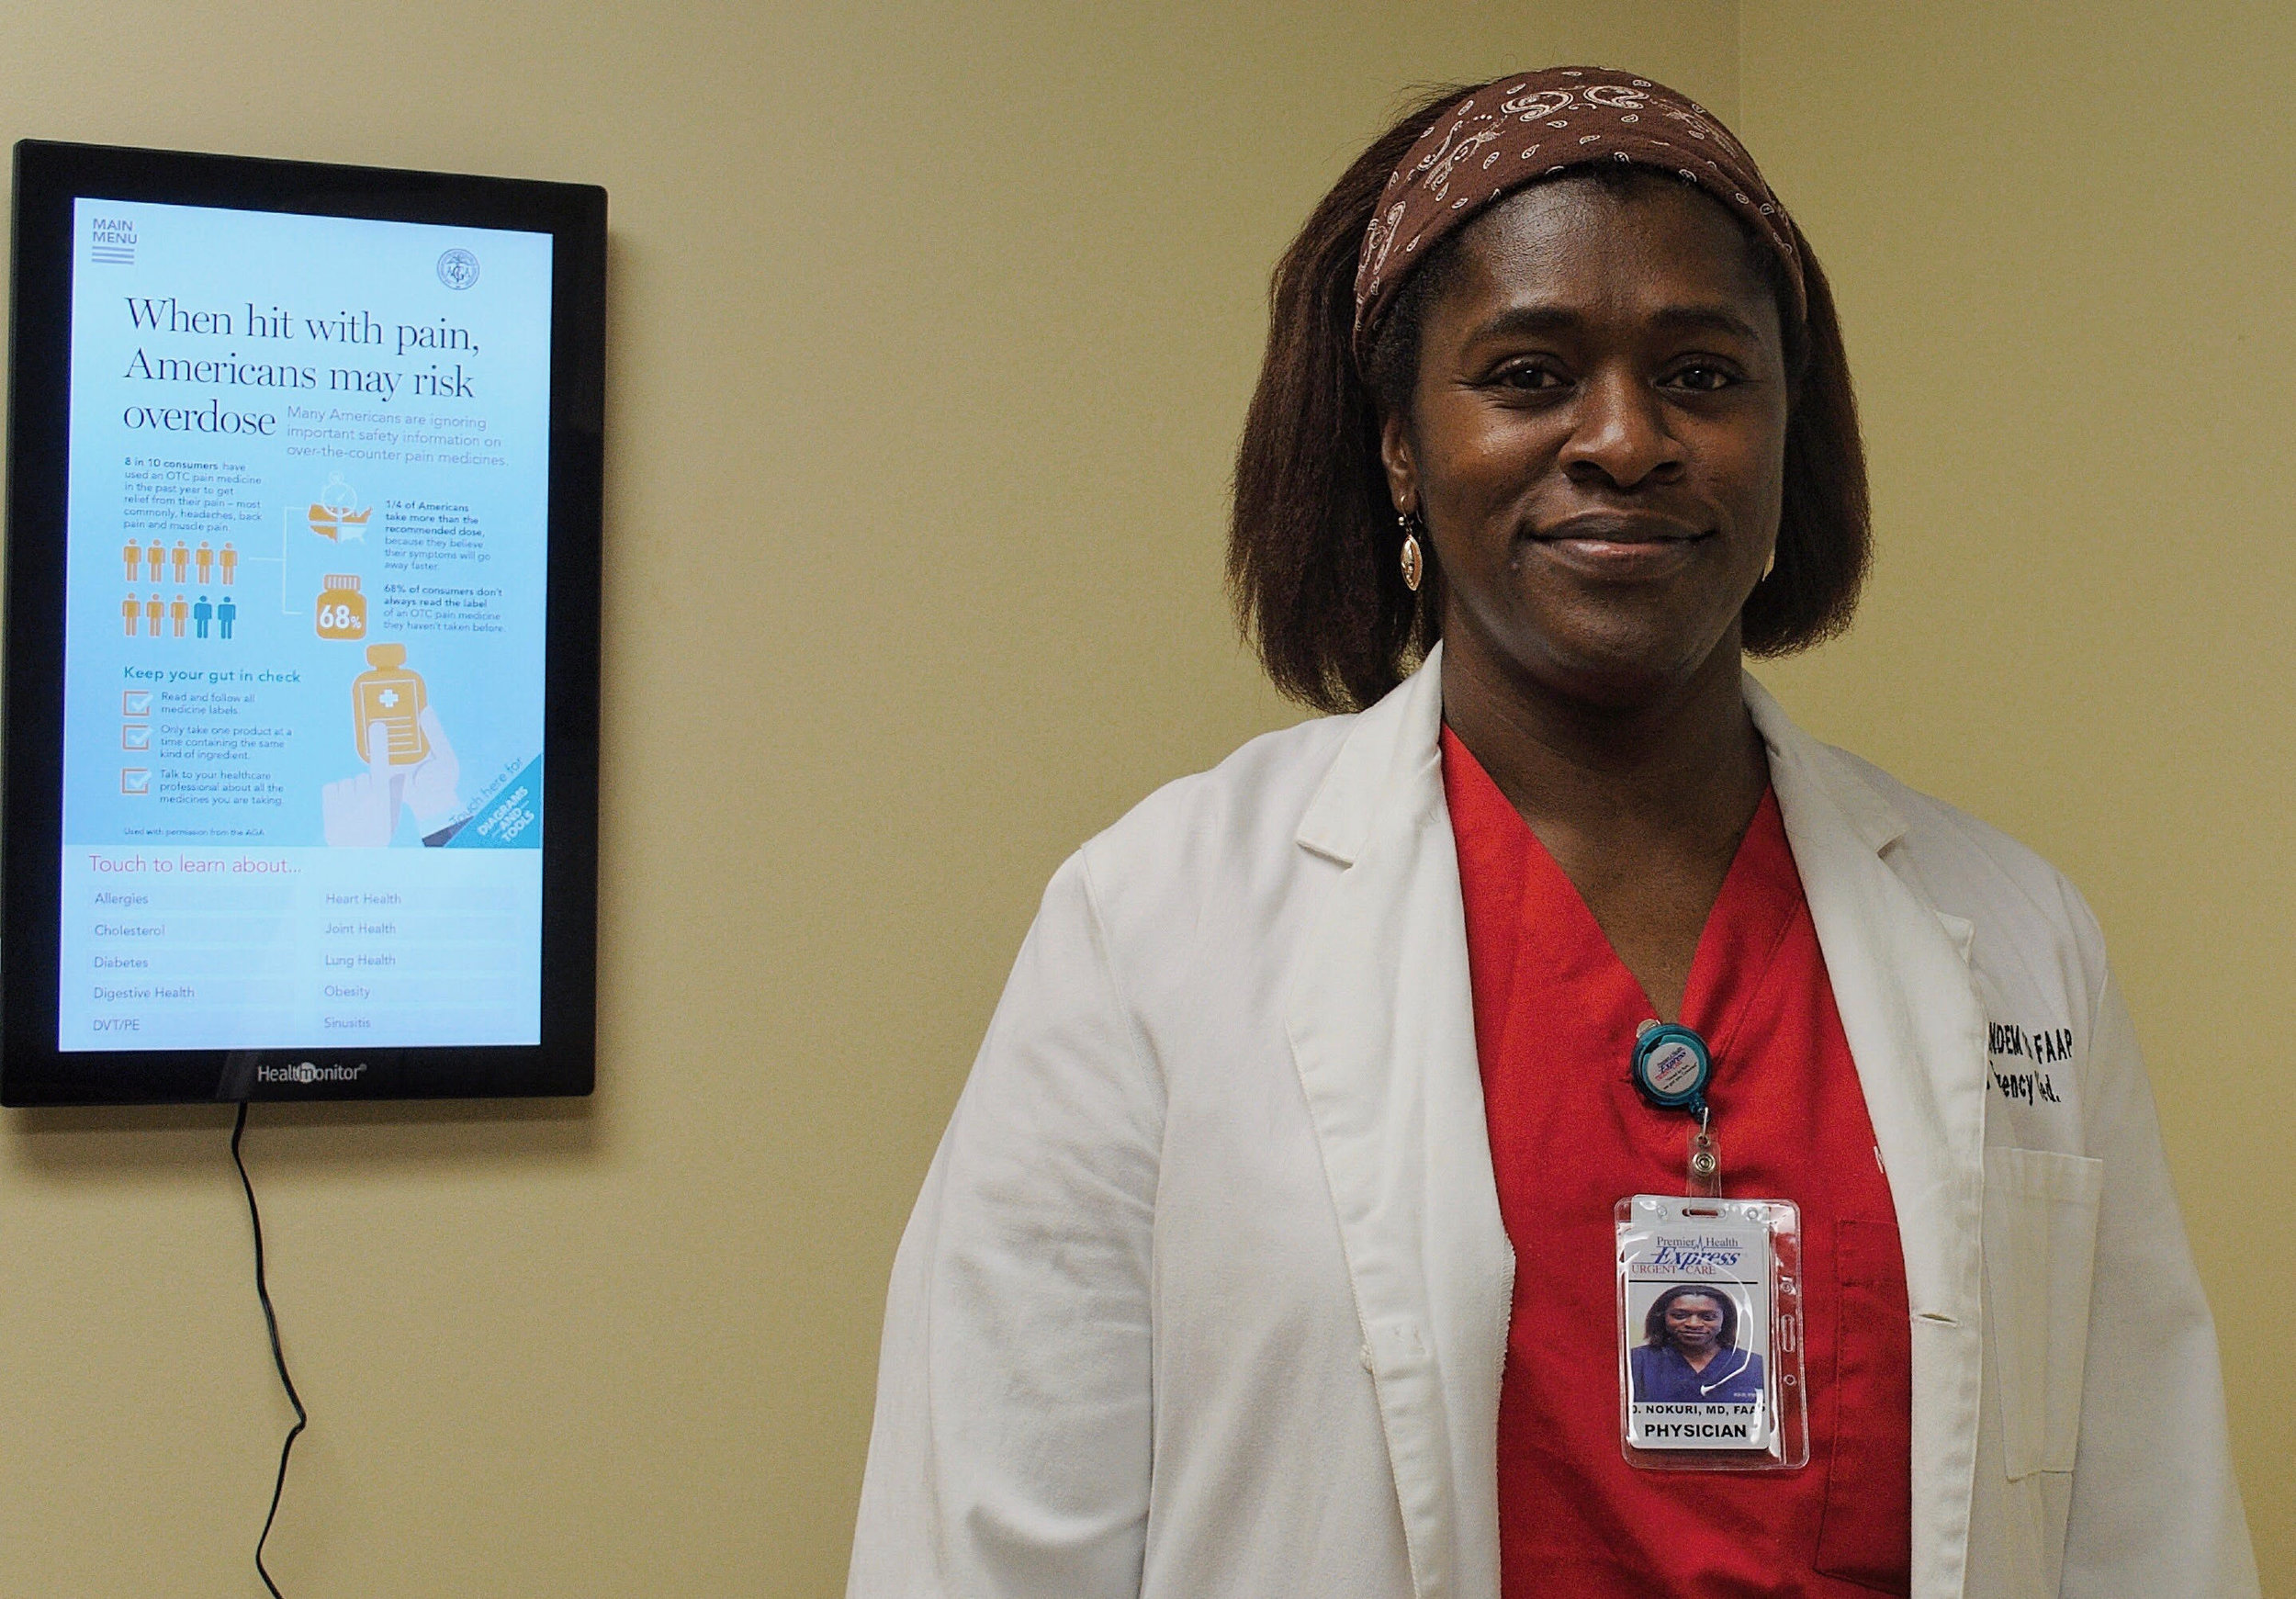 Dr Nokuri Premier Health Express Urgent Care Pediatrician and AAA Physical Therapy Best in Columbia Howard County MD.jpg